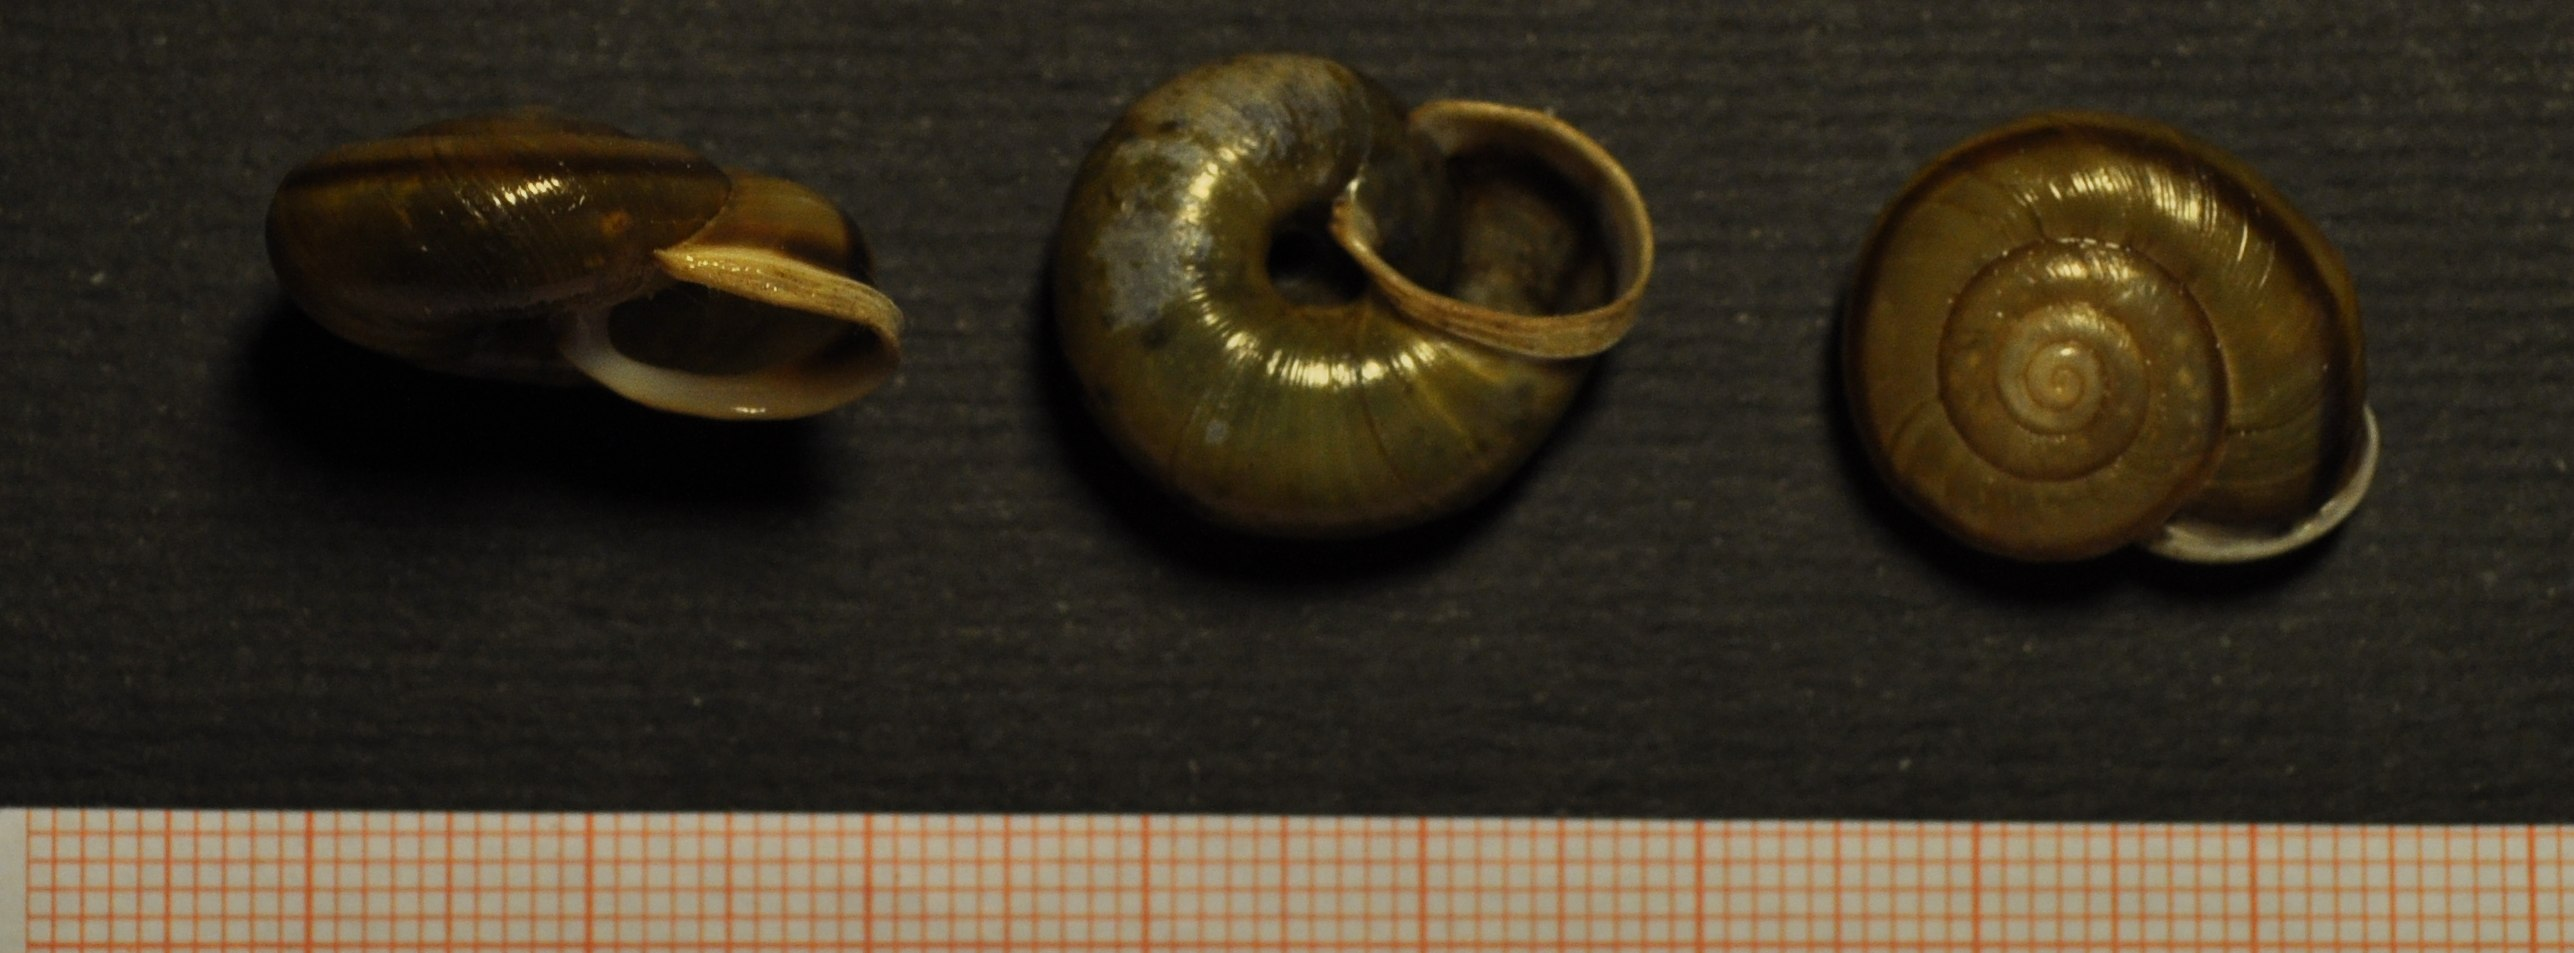 Chilostoma millieri (Bourguignat, 1880)